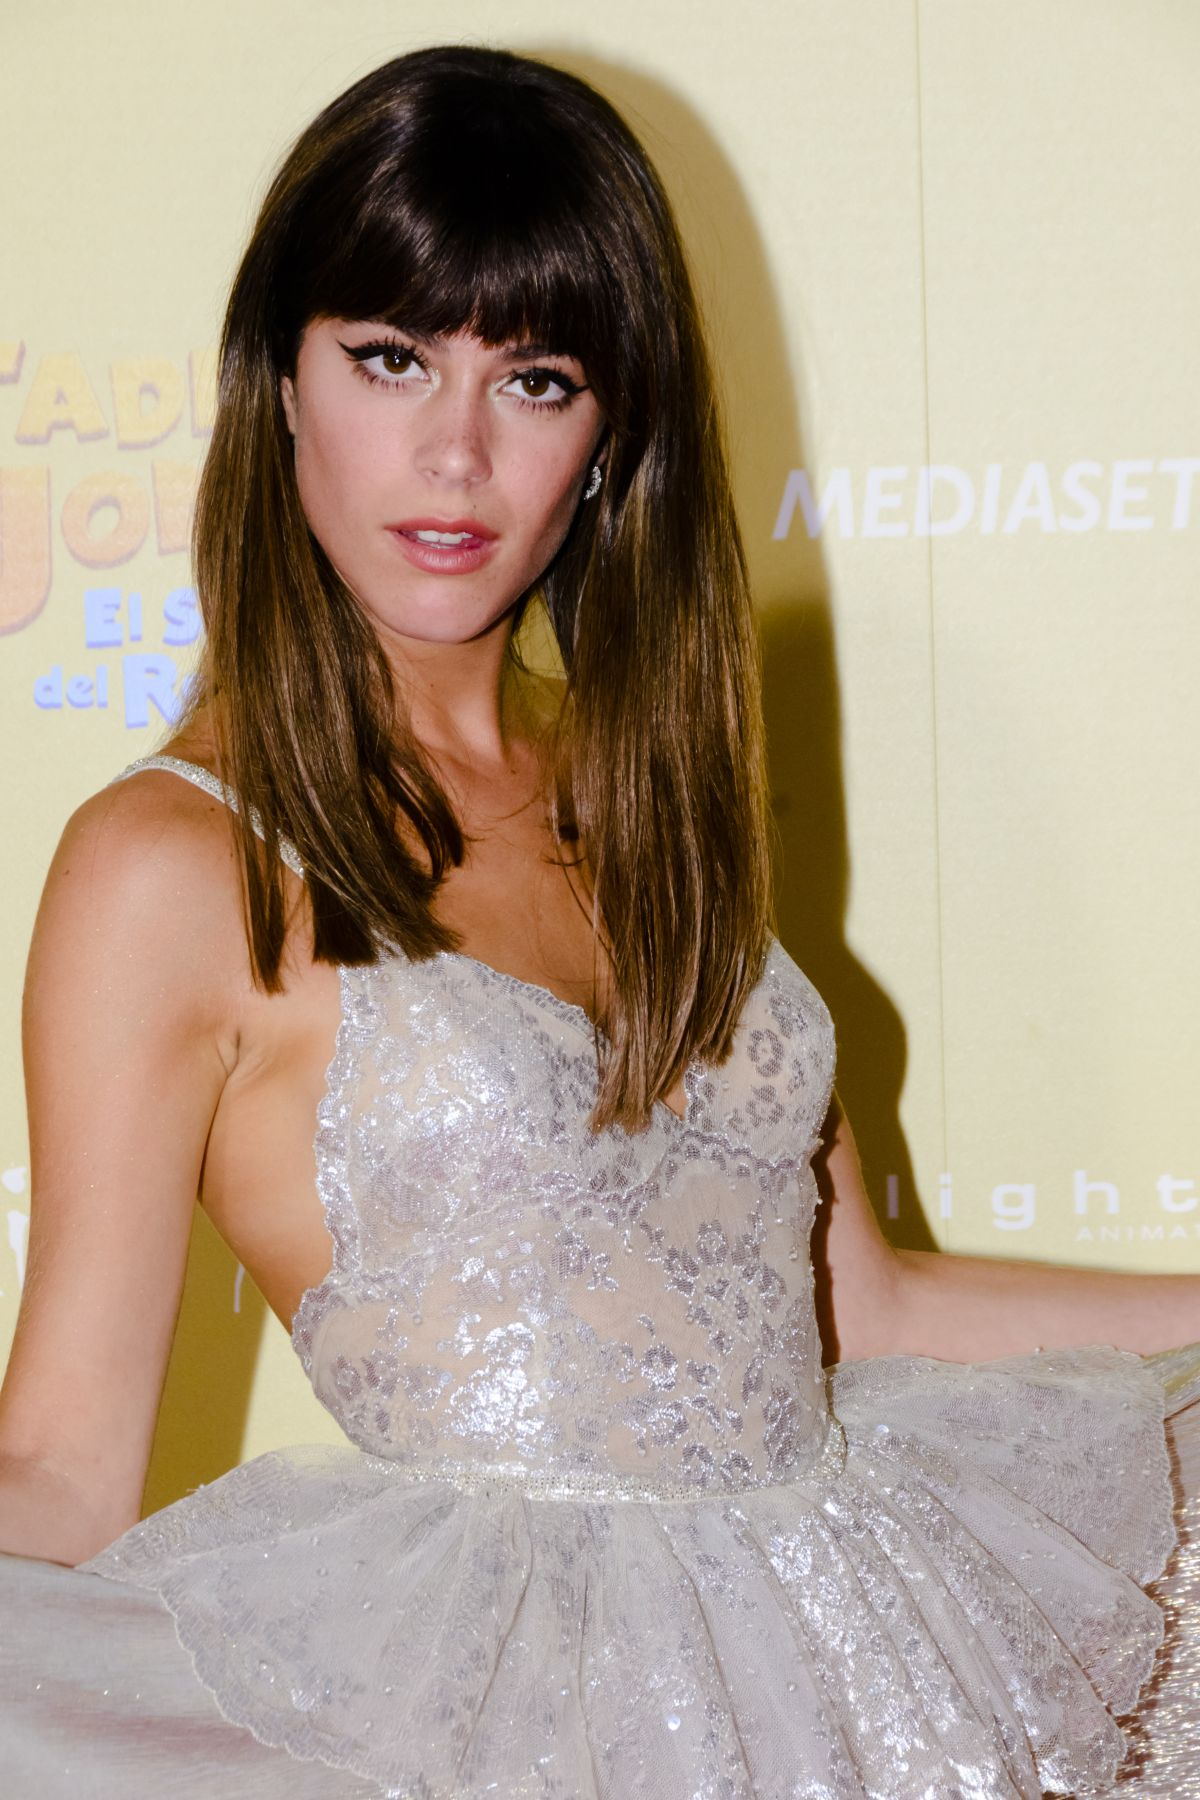 MARTINA STOESSEL at Tadeo Jones 2 Premier in Madrid 08/22/2017